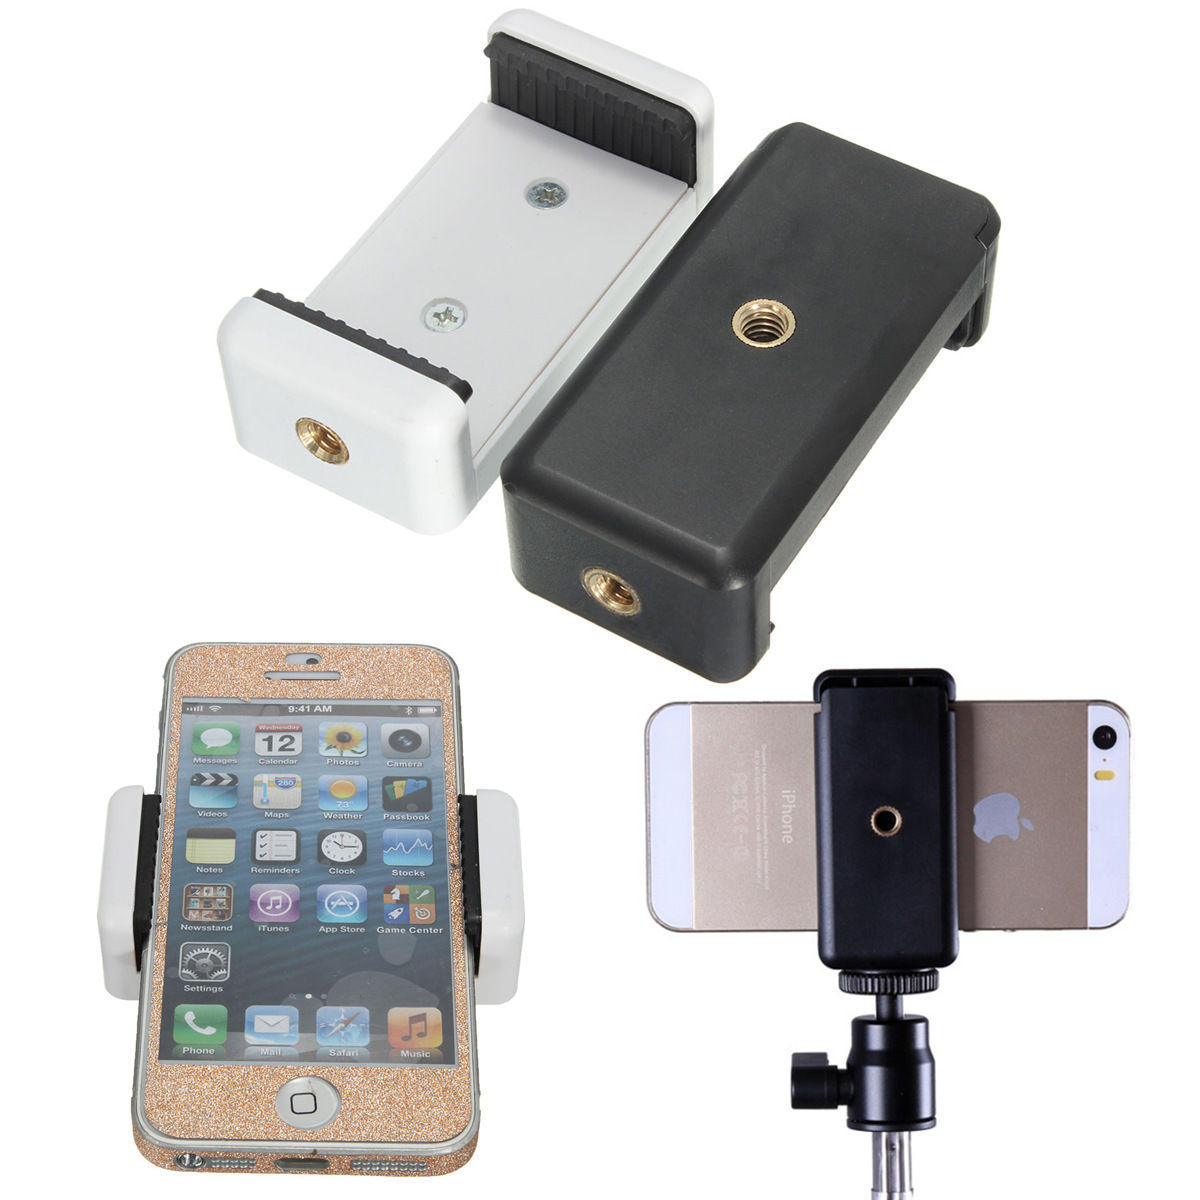 $1.39 + Free Shipping Phone Tripod Monopod Selfie stick Clip Bracket Holder